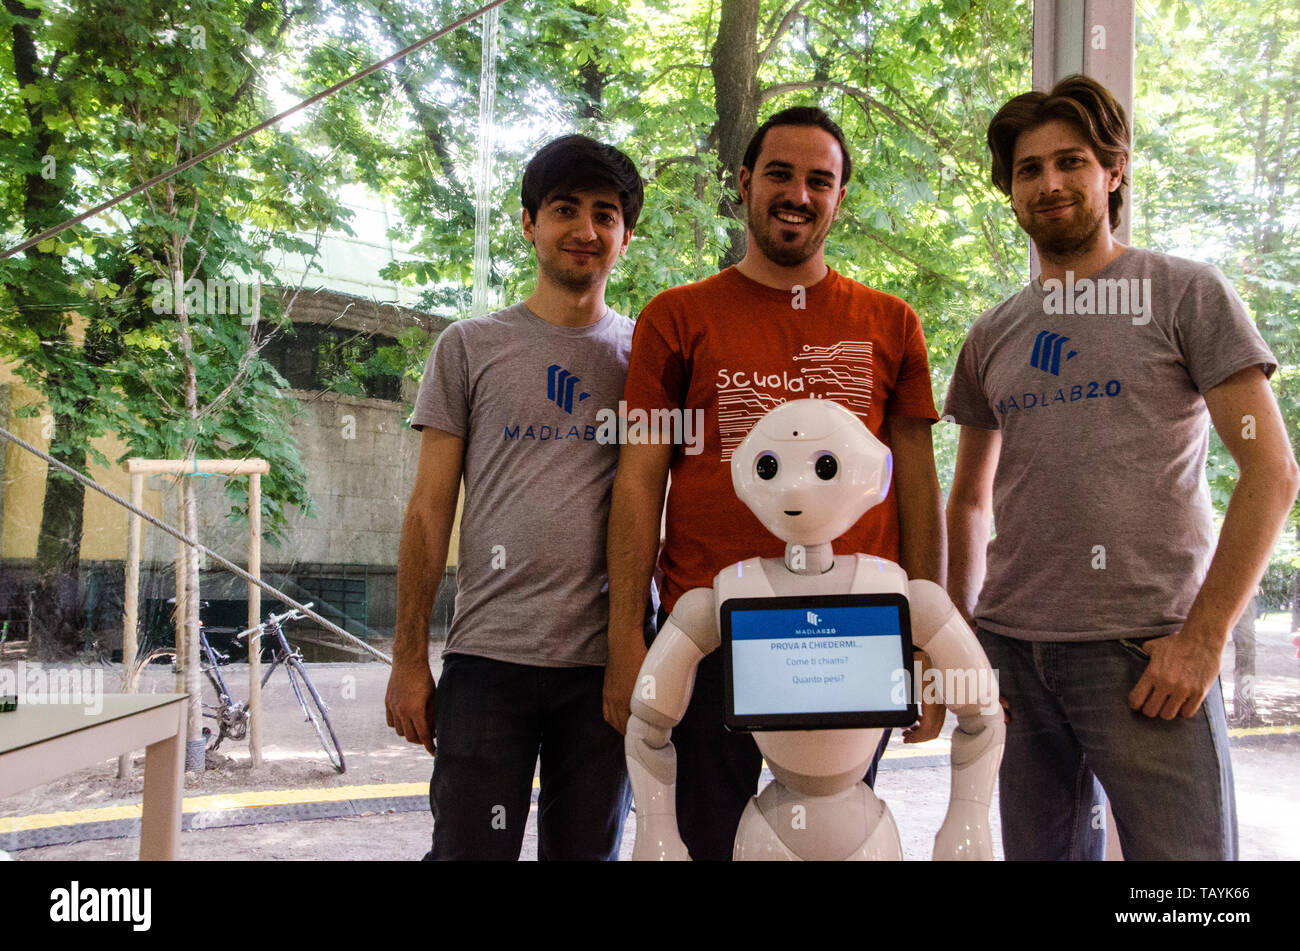 Filippo Bogliolo, Marco Andreana and Fabrizio La Rosa from Madlab 2.0 and School of robotics at Wired Next Fest. Milan, May 25th, 2019 - Stock Image